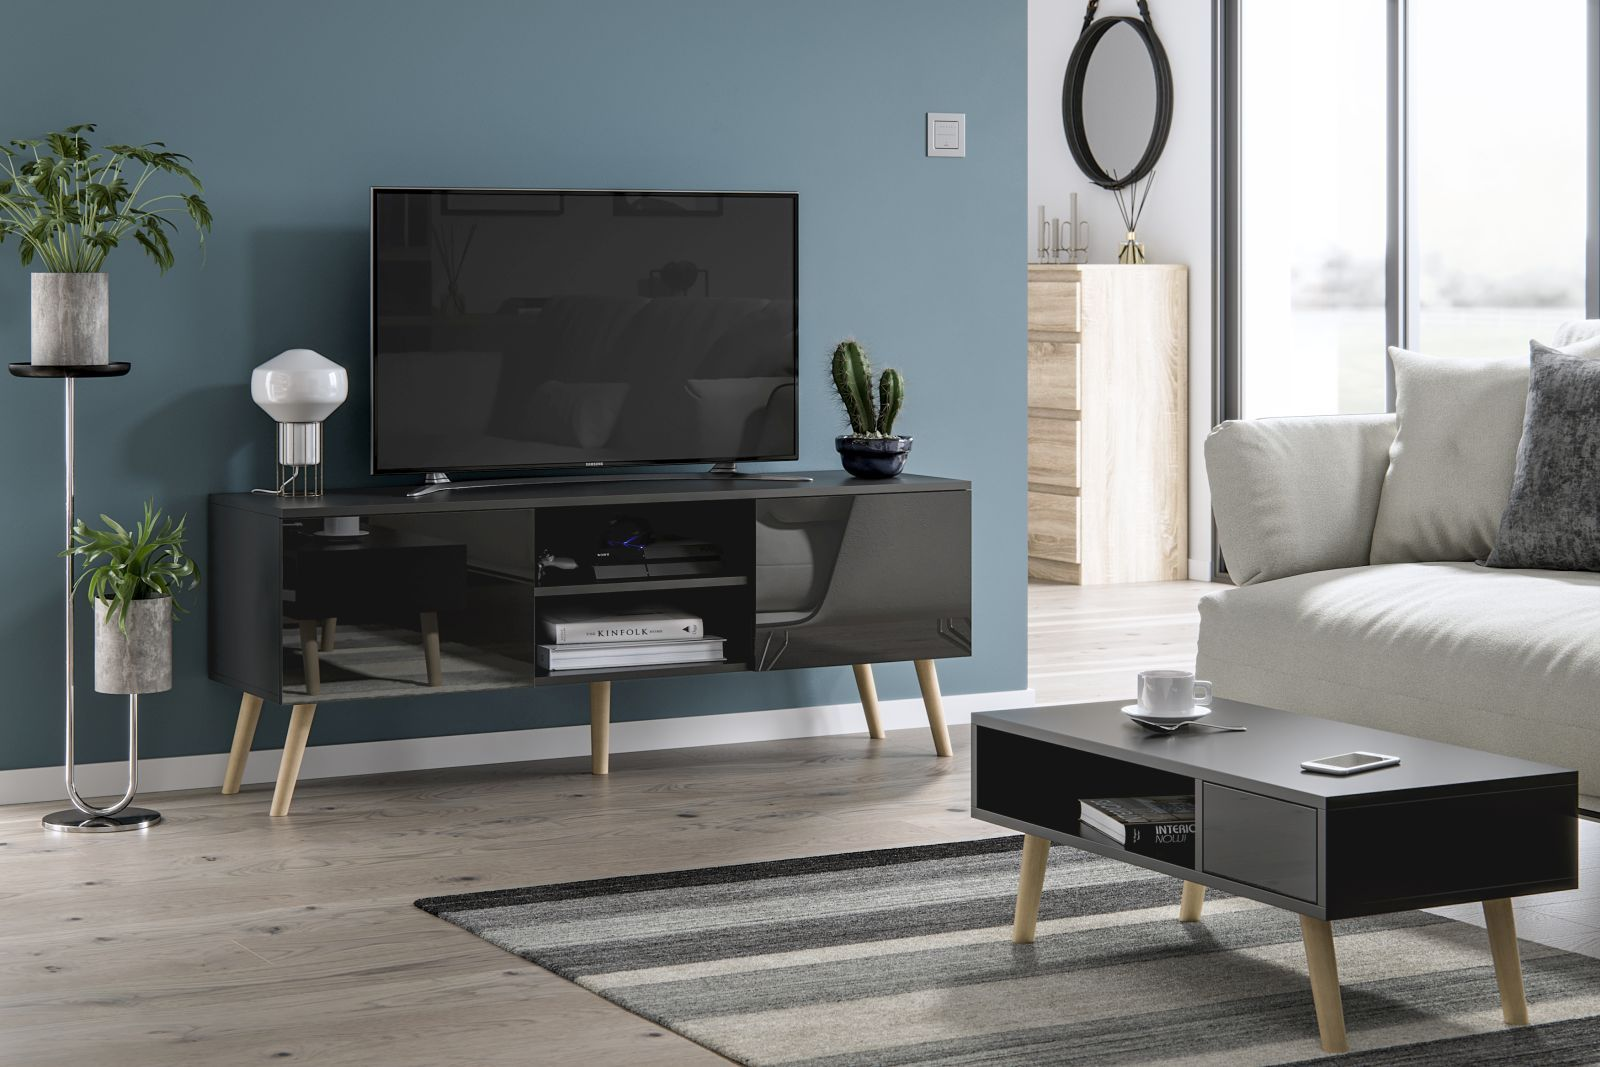 35++ Tv stand and coffee table set white ideas in 2021